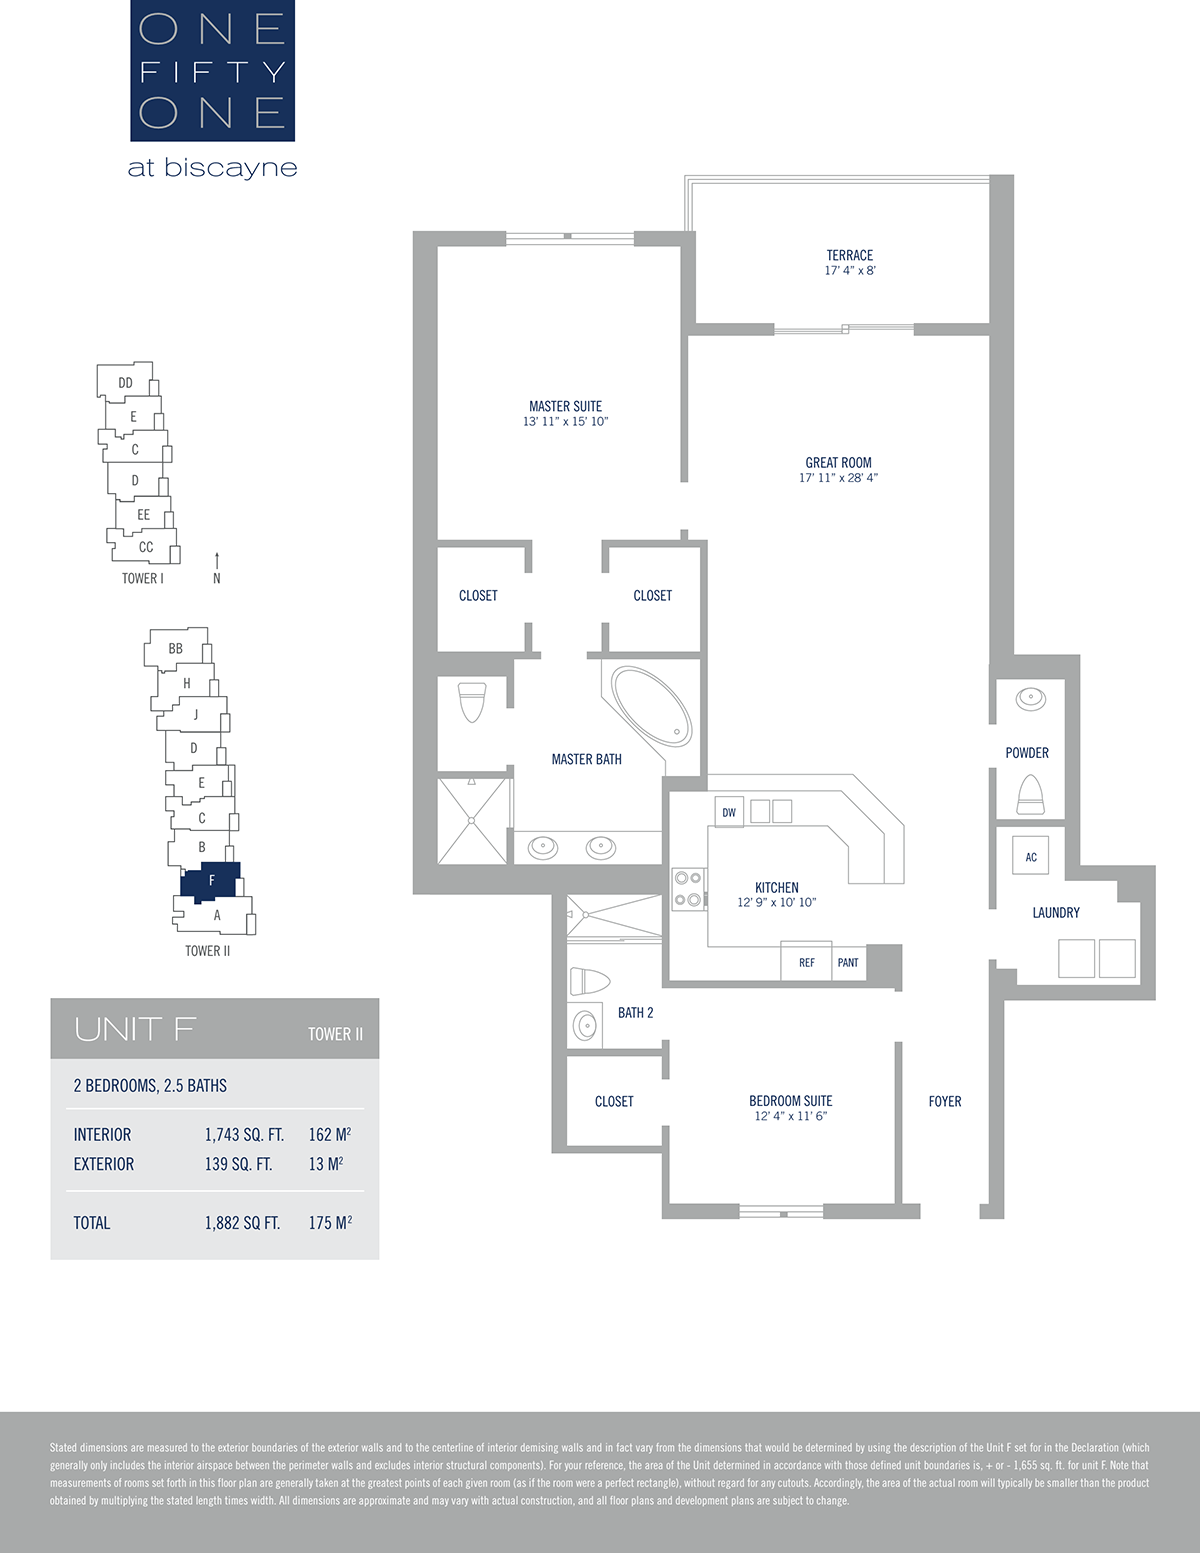 One Fifty One At Biscayne - Floorplan 9